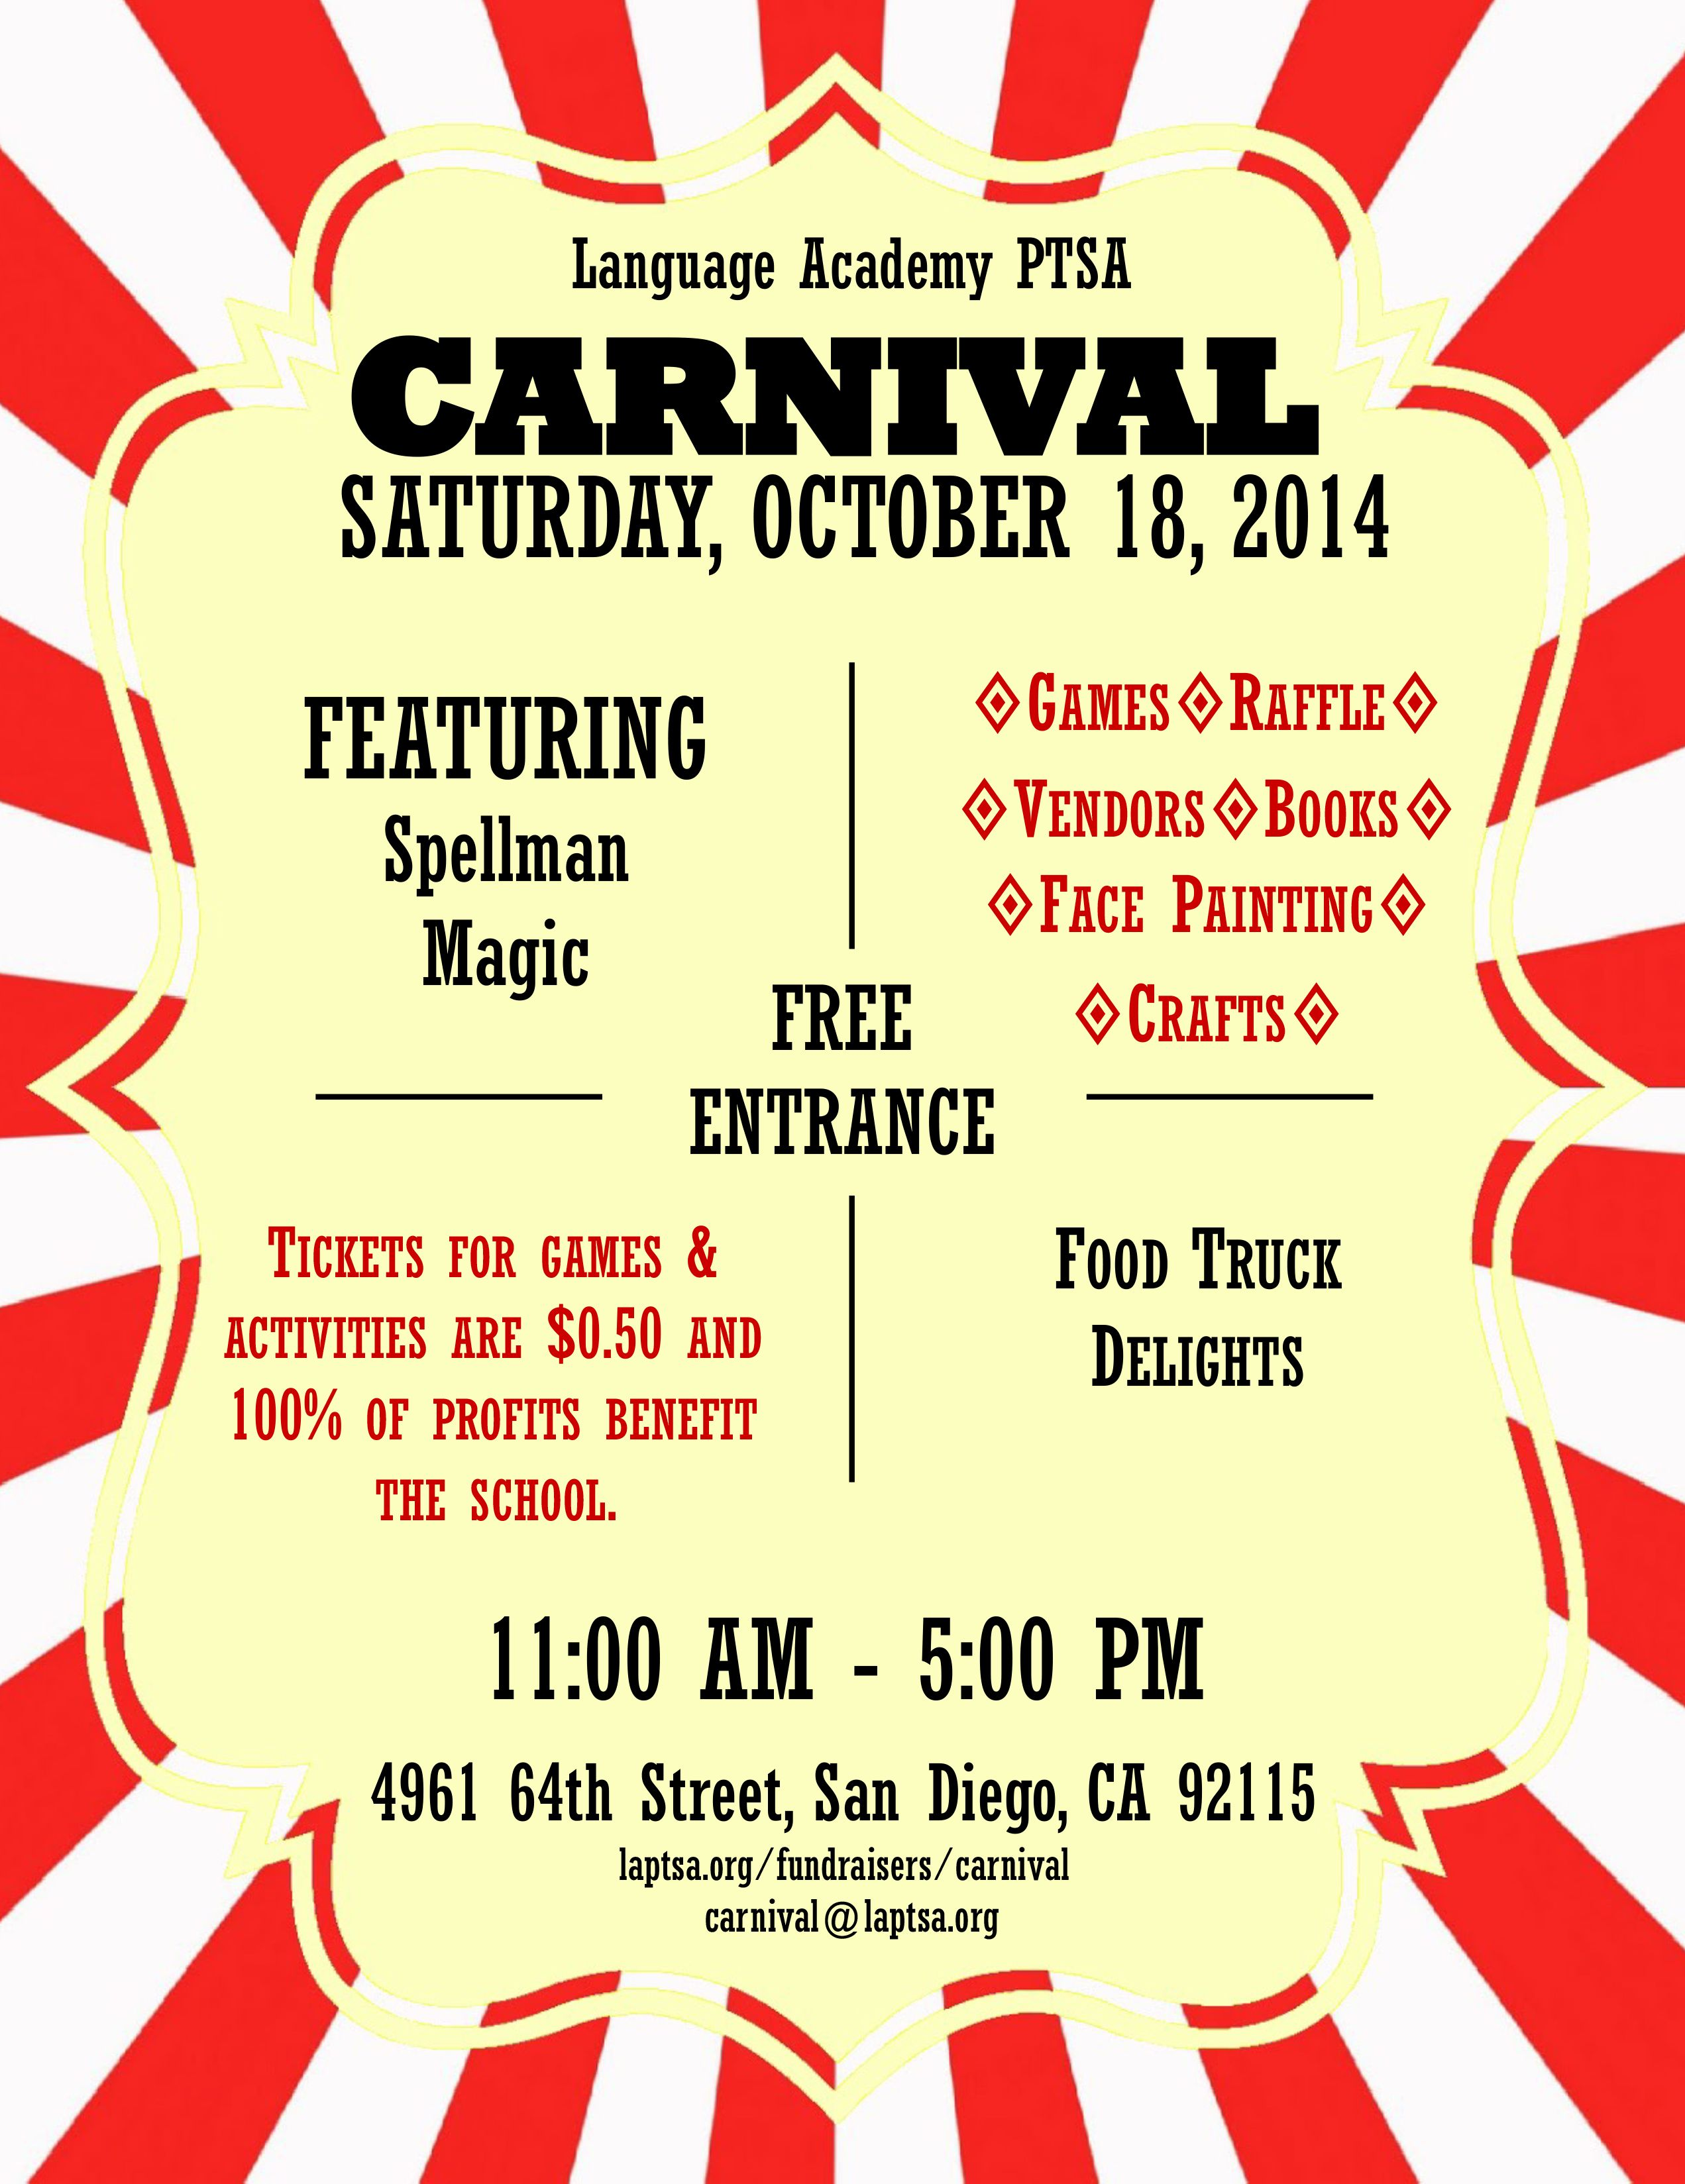 cancer fundraiser carnival flyer examples